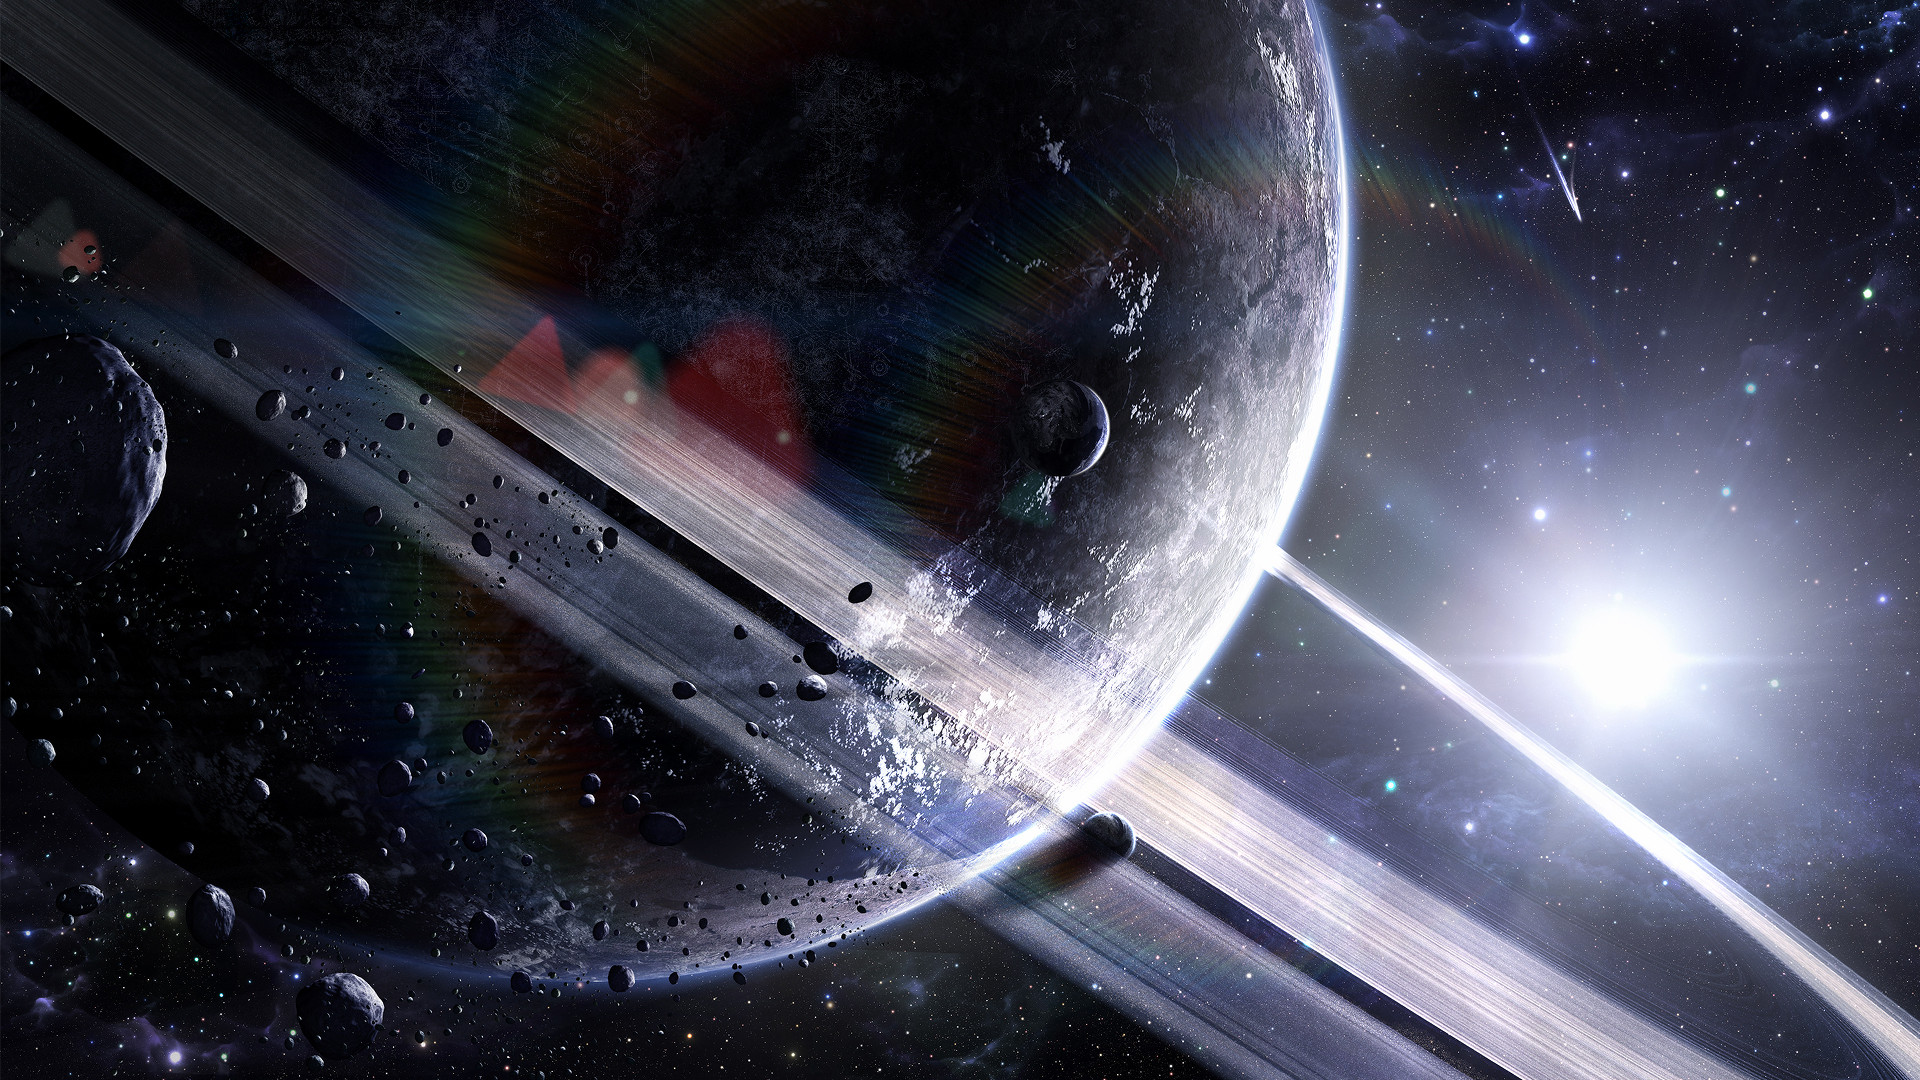 Space-Hd-Wallpapers-1080P-wallpaper   Wallpapers Photos Pictures